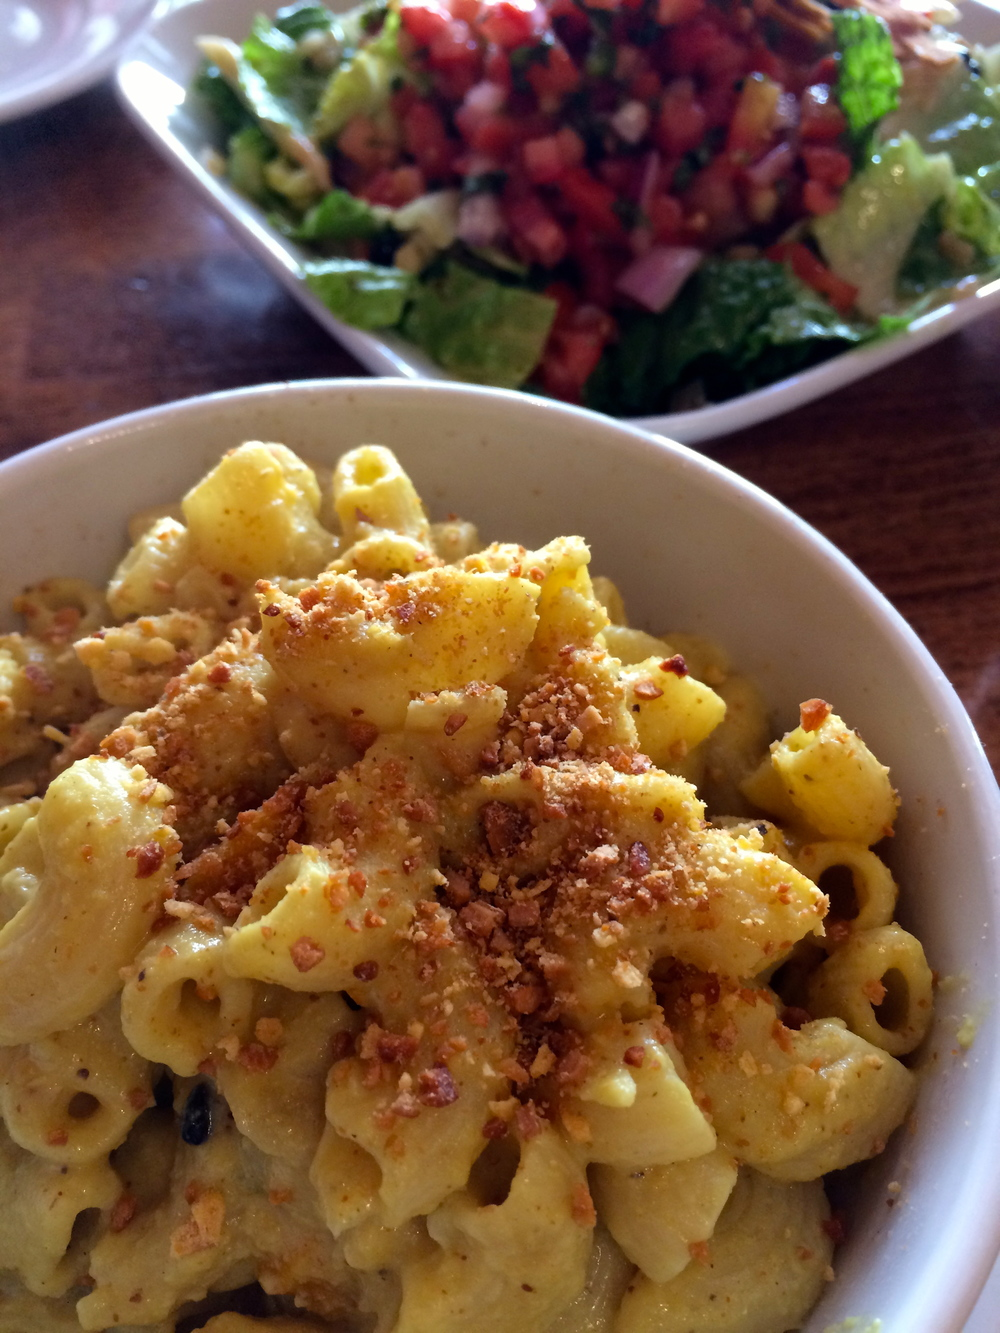 RFD - Vegan Mac & Cheese with a Southwest Salad.